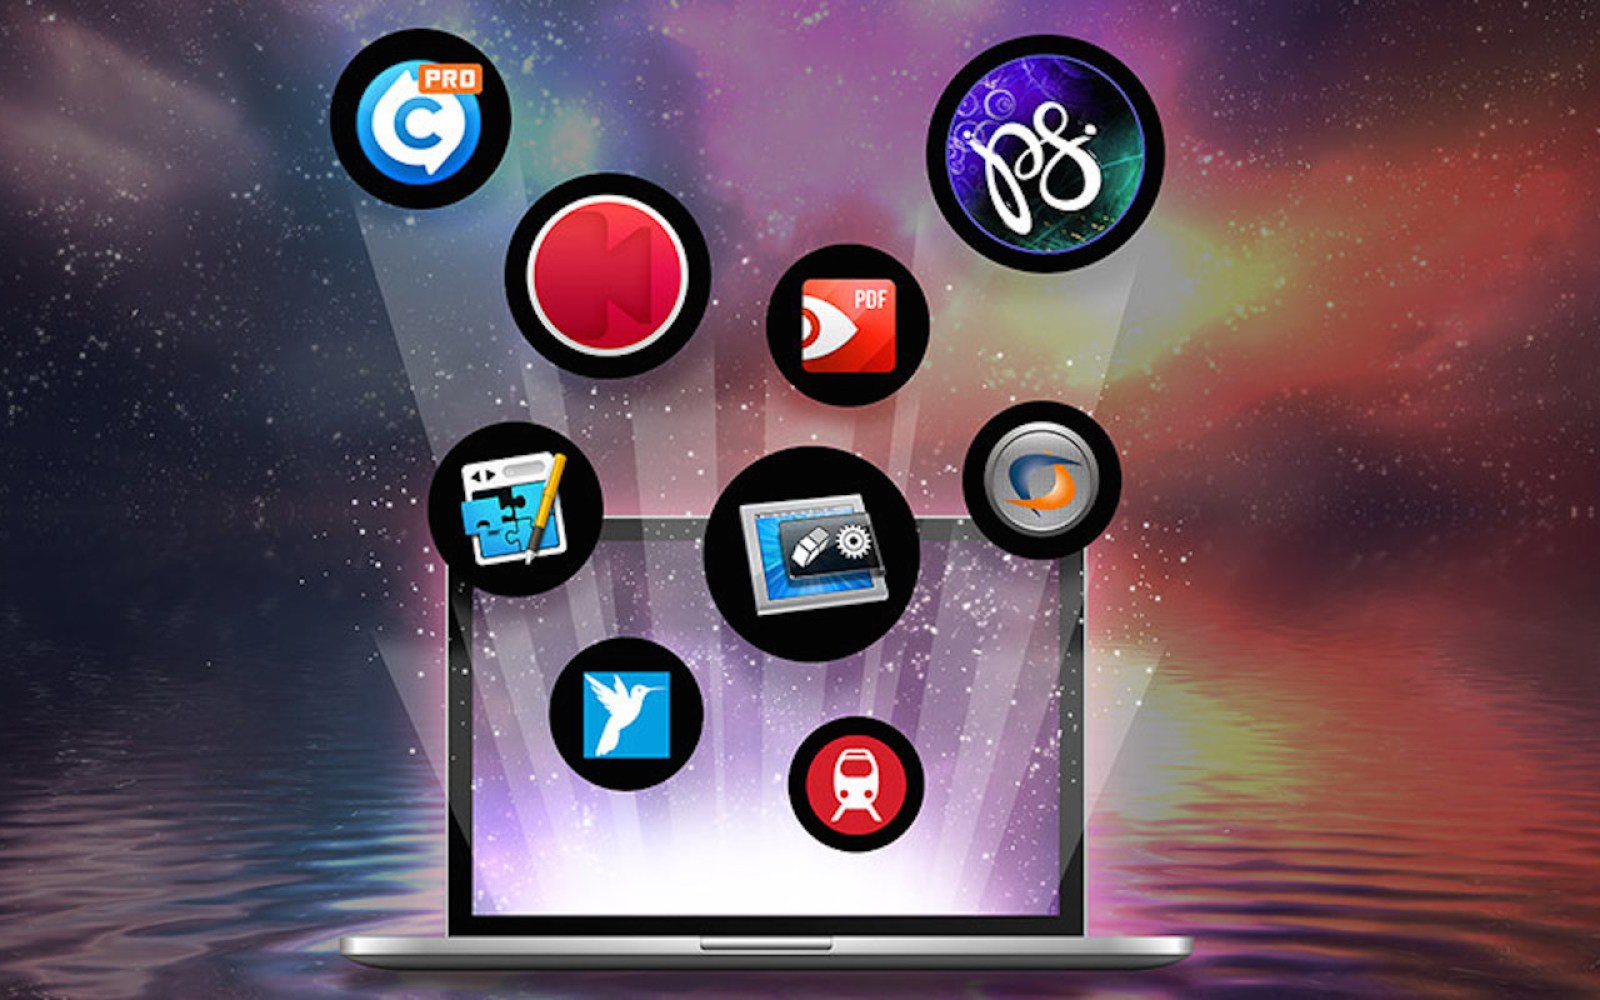 2 Awesome Mac bundles: $20 each, 60 apps, choose wisely! (PDF Expert, RapidWeaver, Crossover, more)